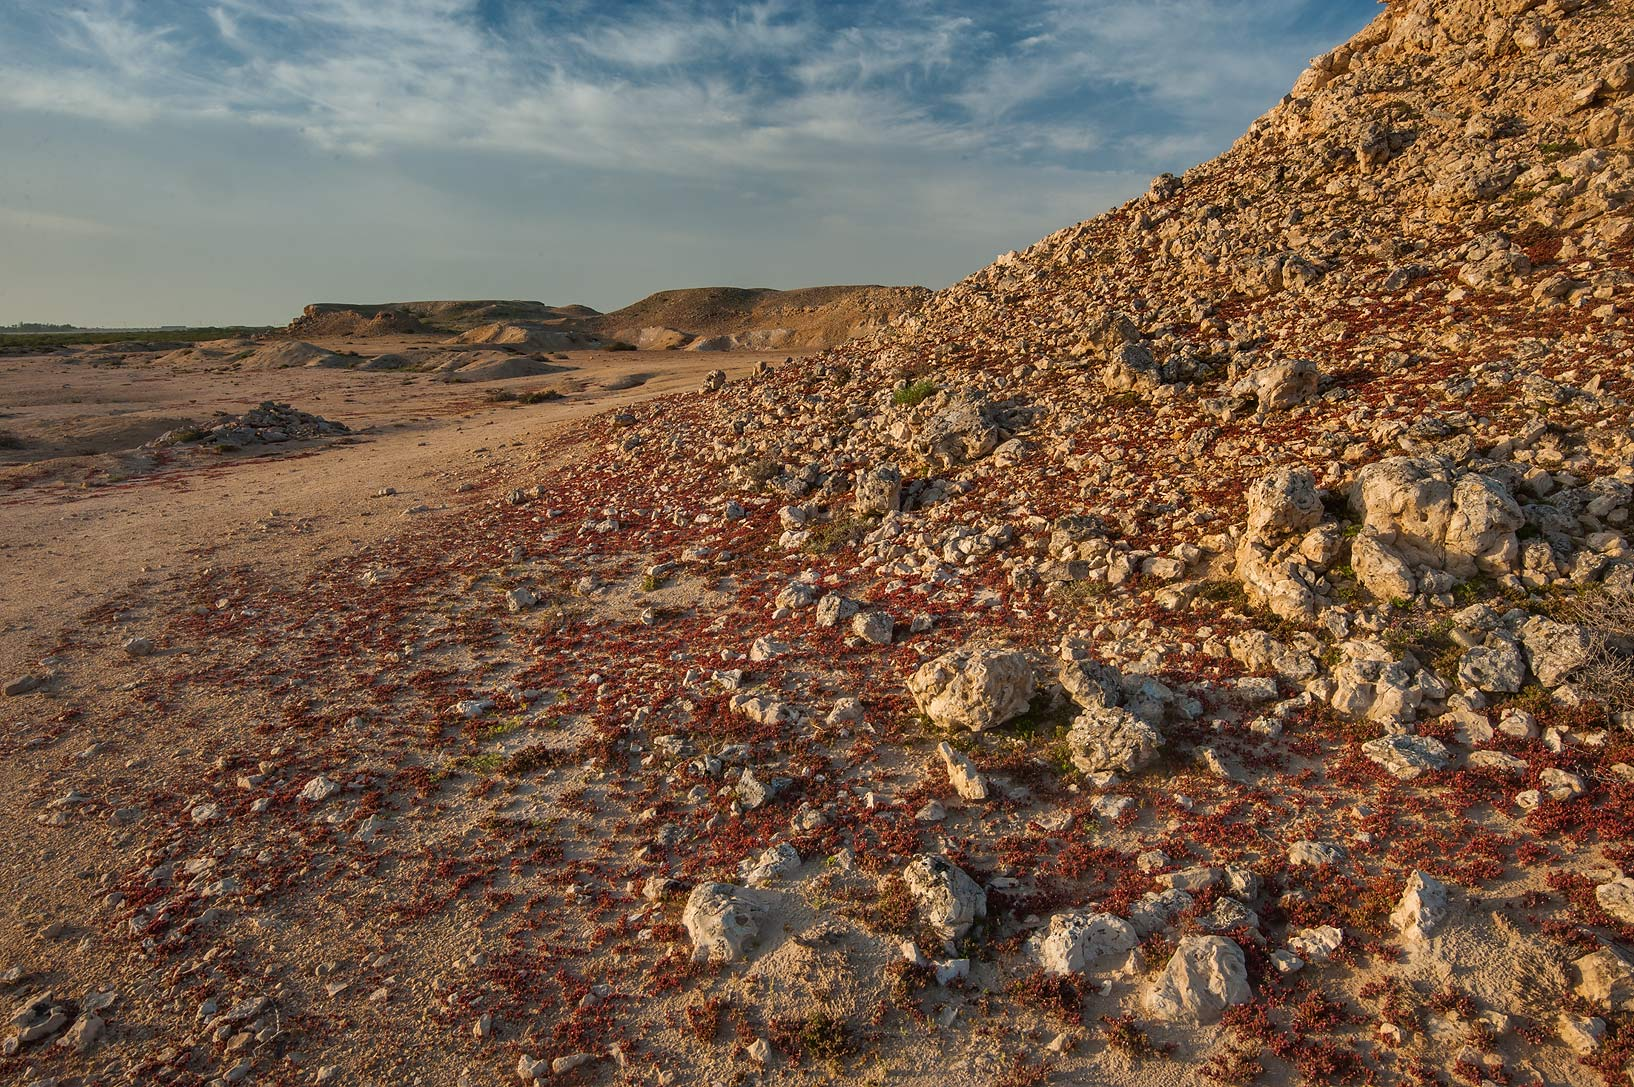 Rocky slope of a hill on Purple Island (Jazirat Bin Ghanim). Al Khor, Qatar